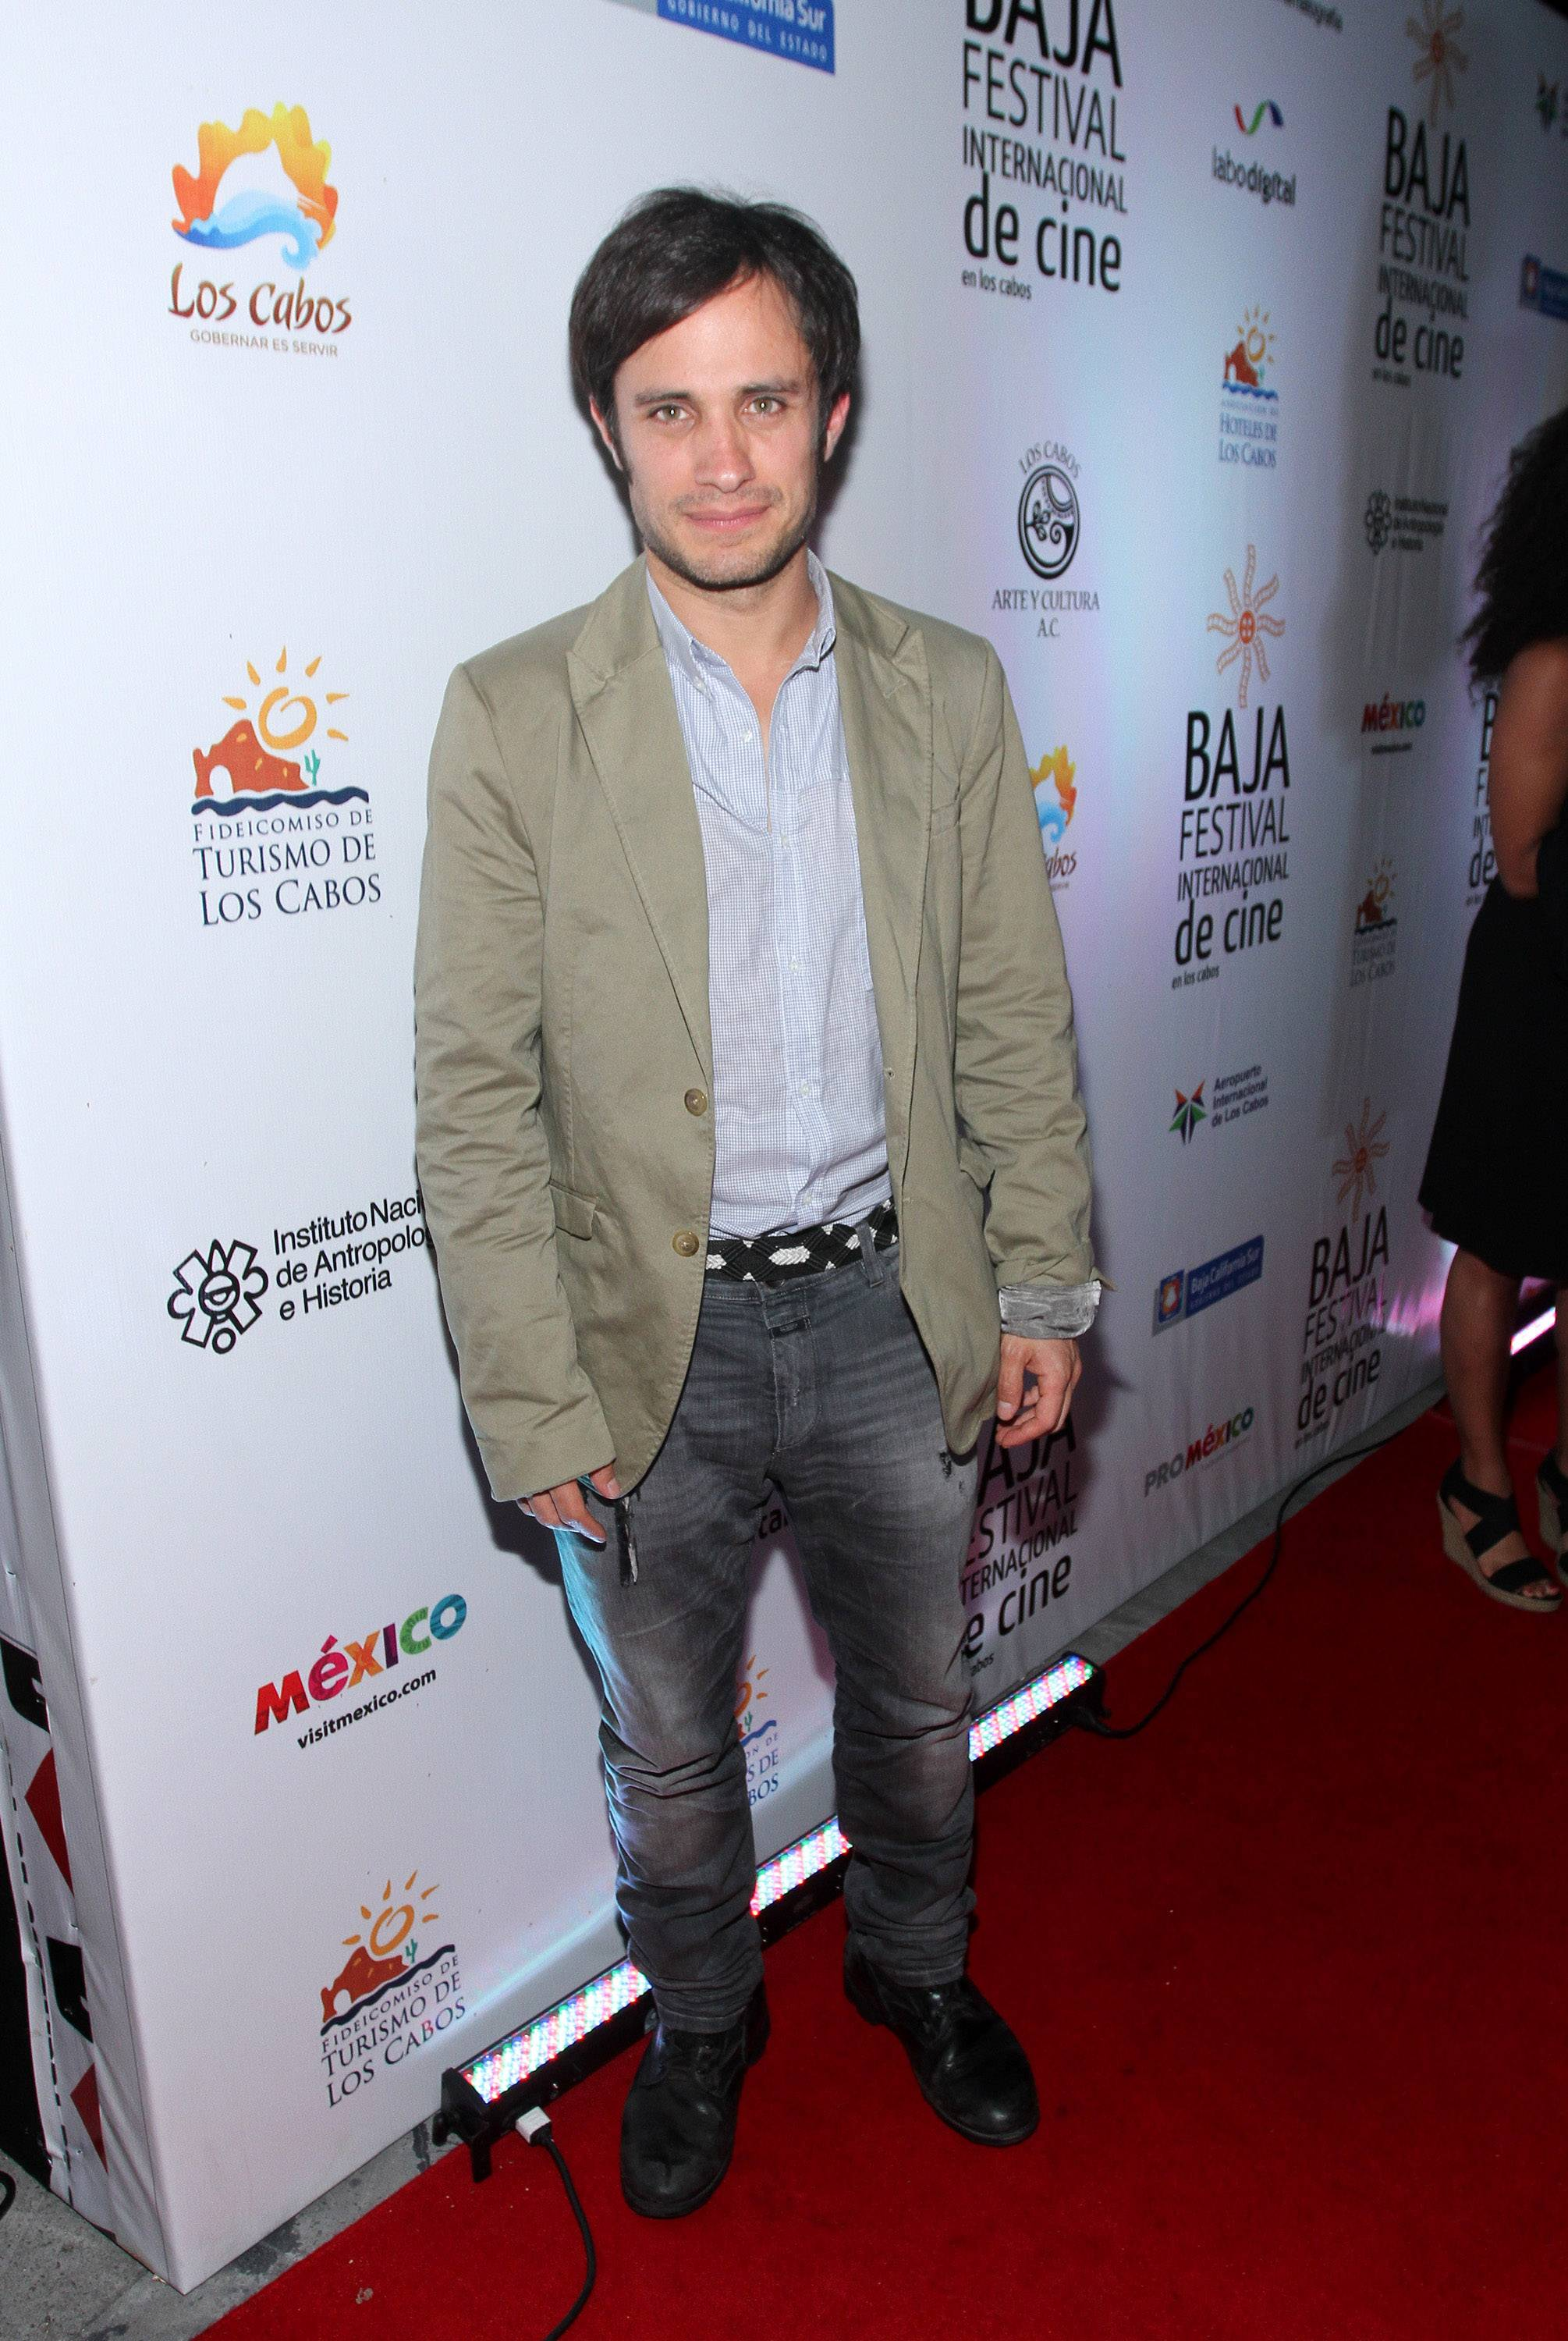 Baja International Film Festival - Day 4